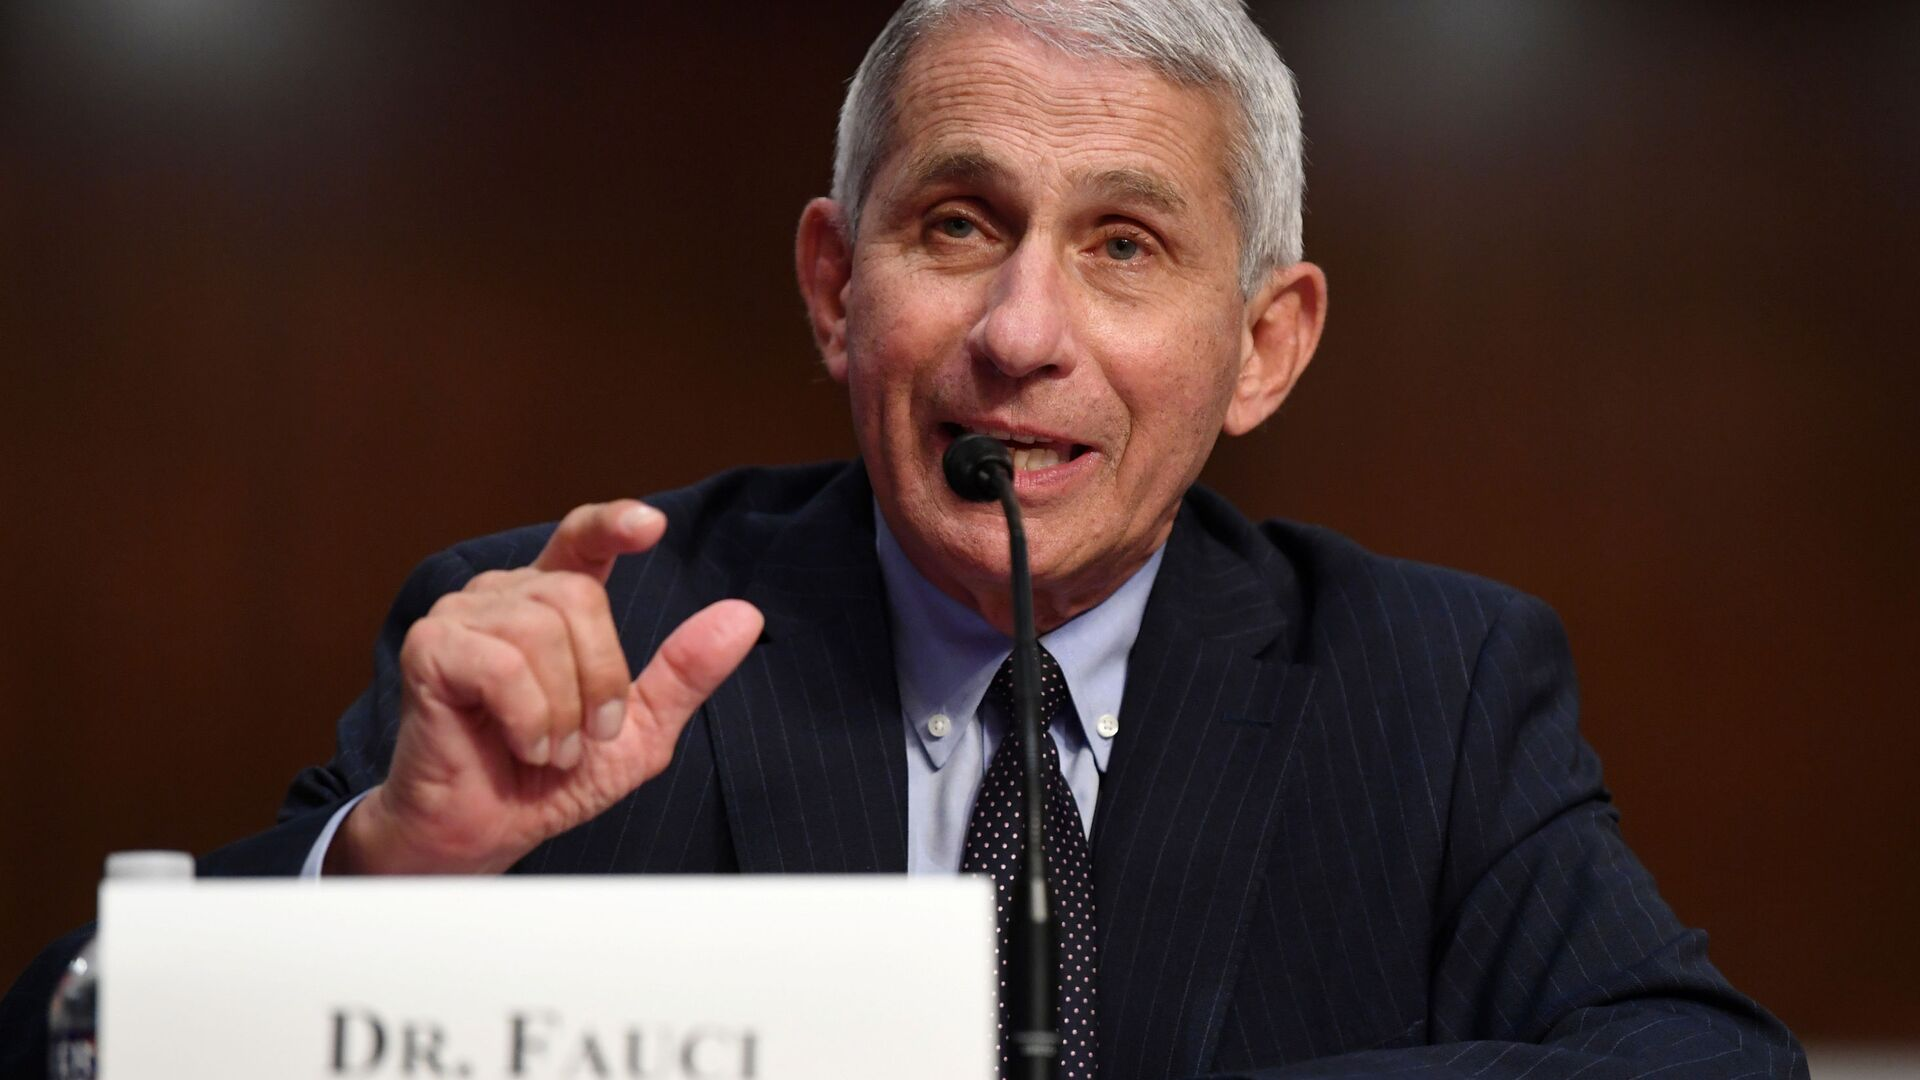 Dr Anthony Fauci, director of the National Institute for Allergy and Infectious Diseases, testifies during a Senate Health, Education, Labor and Pensions (HELP) Committee hearing on Capitol Hill in Washington, U.S., June 30, 2020. - Sputnik Italia, 1920, 31.05.2021